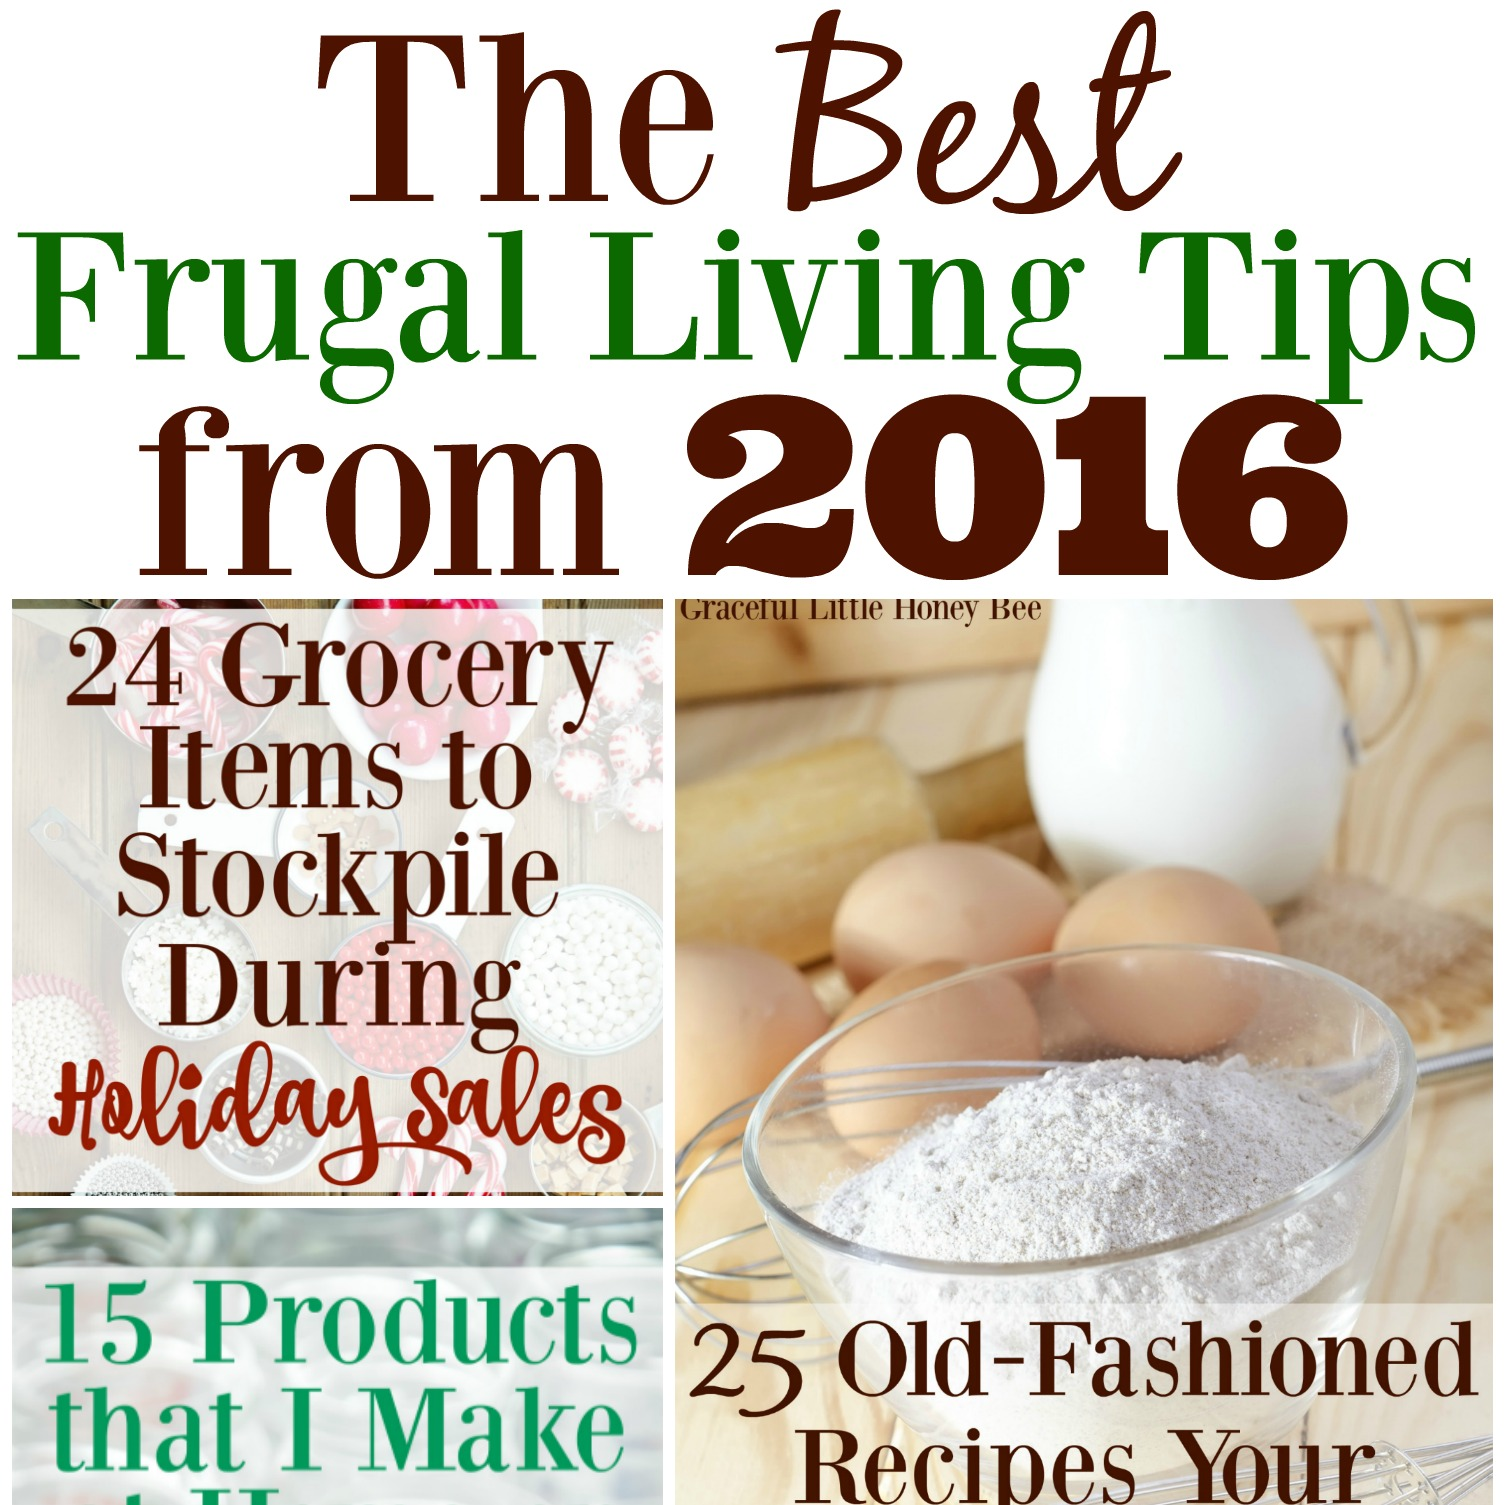 how to live frugally A step by step guide that teaches you how to live frugally so you have more money left at the end of your paycheck than the other way around.